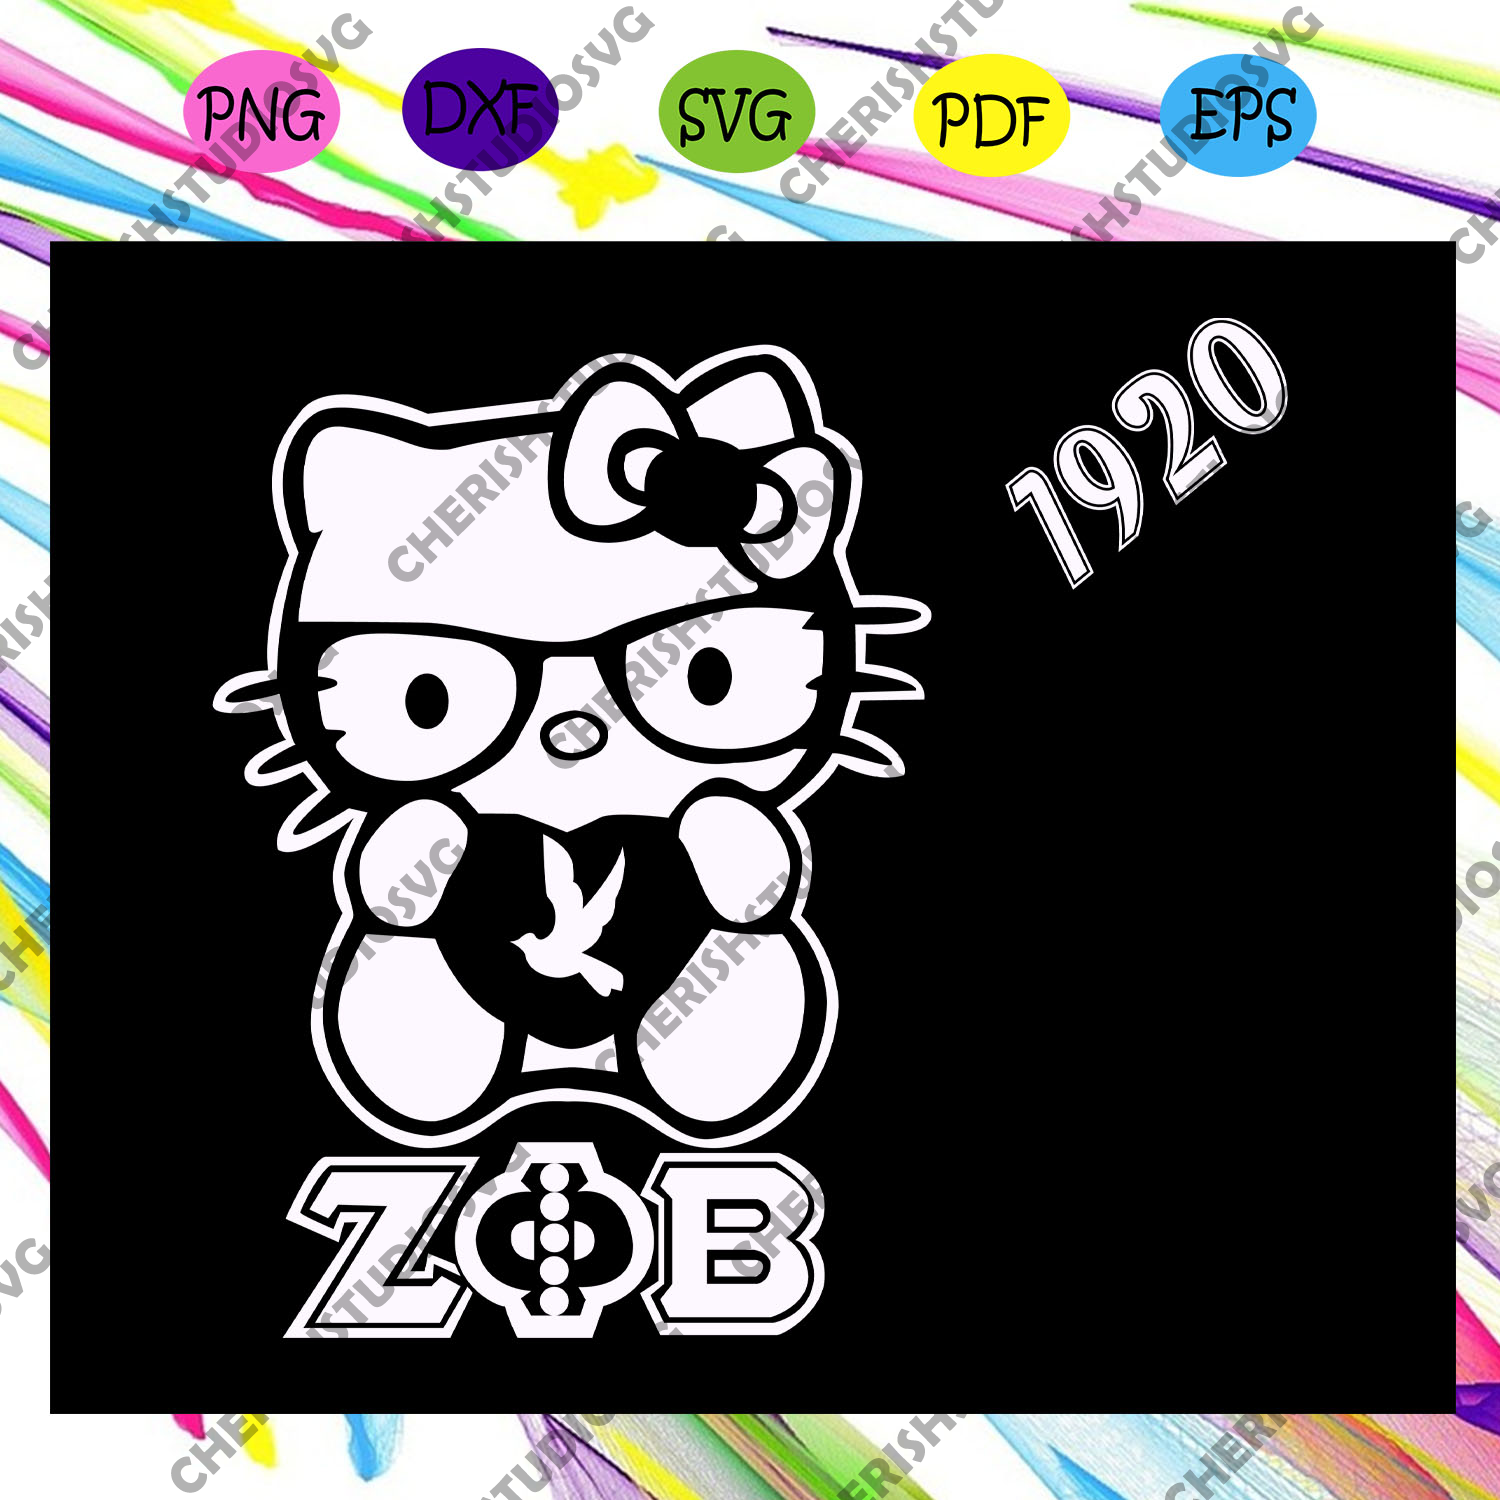 Hello kitty 1920,zeta svg, 1920 zeta phi beta, Zeta Phi beta svg, Z phi B, zeta shirt, zeta sorority, sorority svg, sorority gift, Files For Silhouette, Files For Cricut, SVG, DXF, EPS, PNG, Instant Download